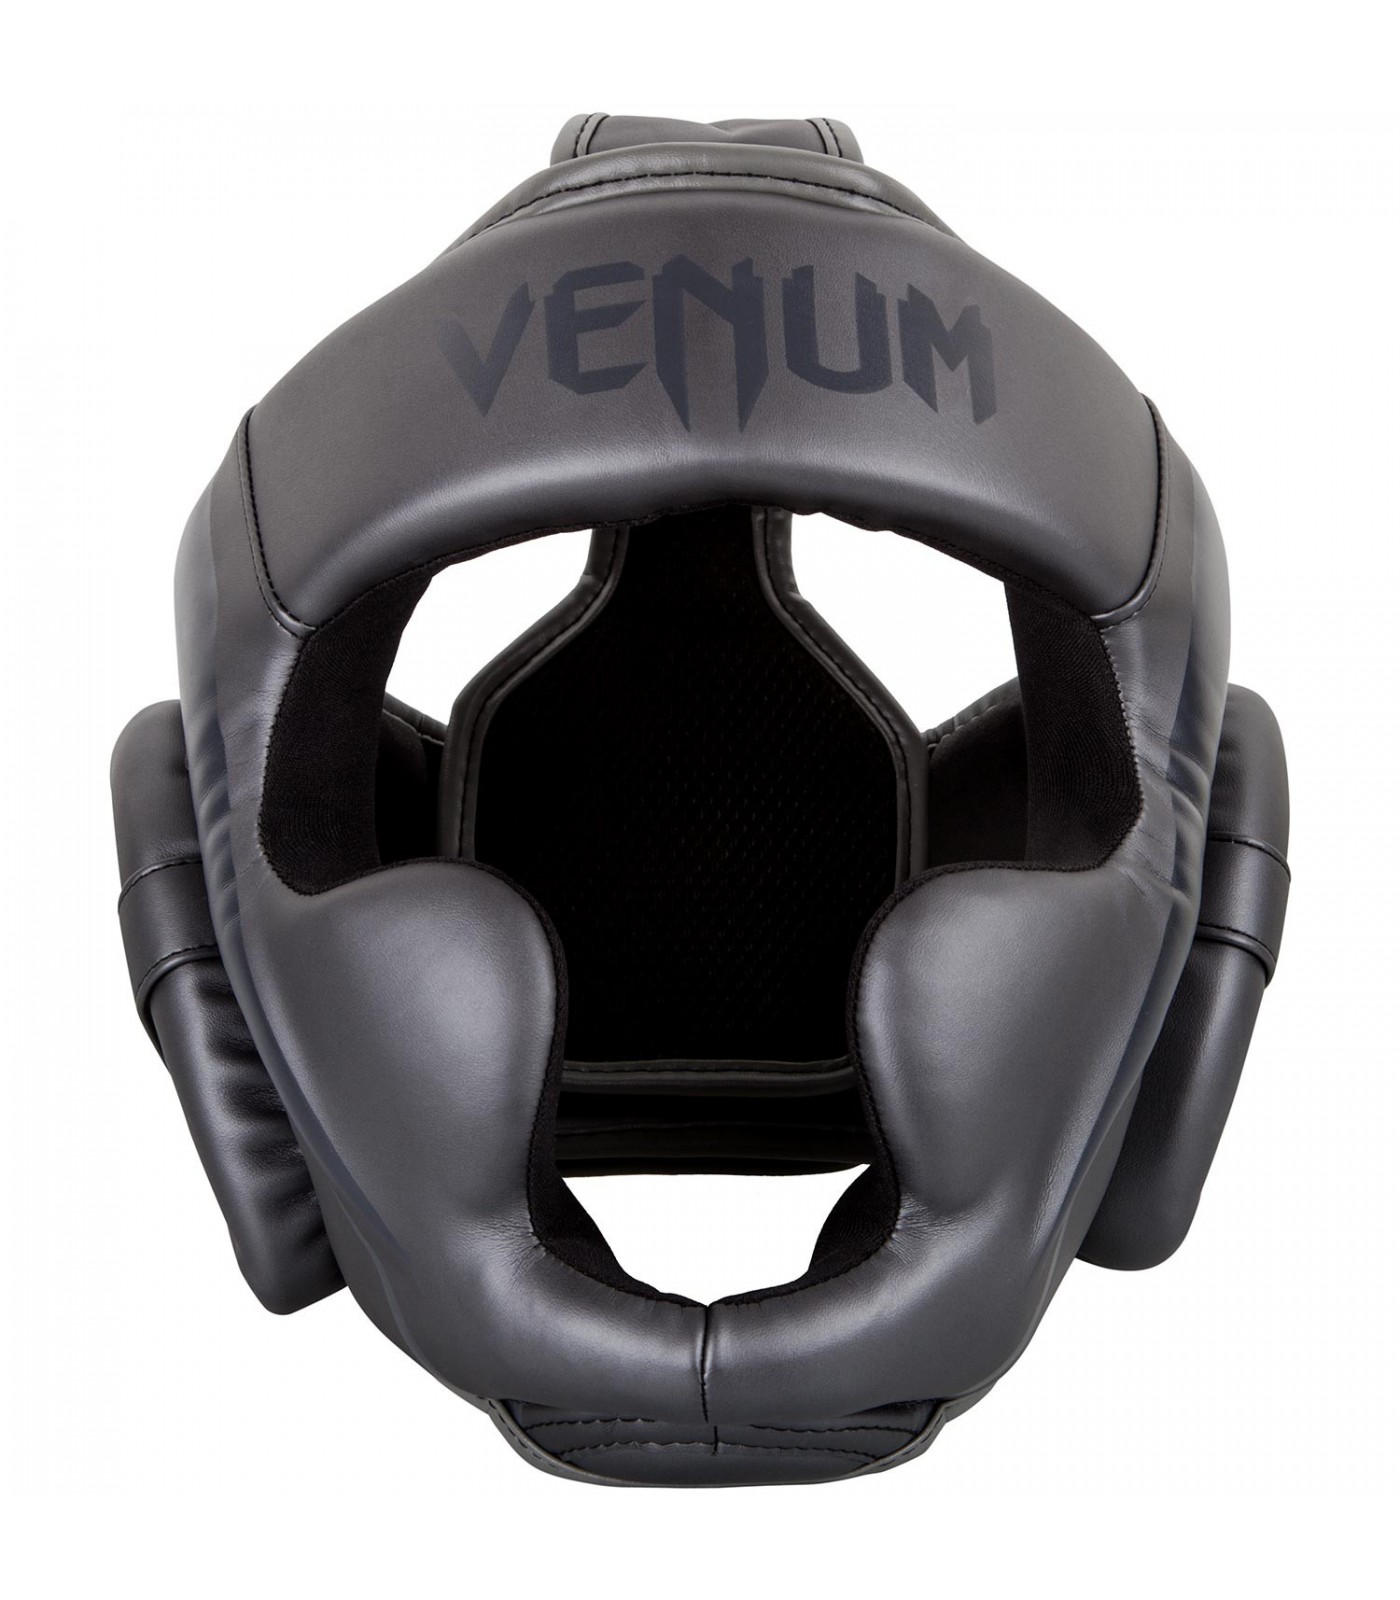 ПРОТЕКТОР ЗА ГЛАВА / КАСКА - VENUM ELITE HEADGEAR-GREY/GREY​